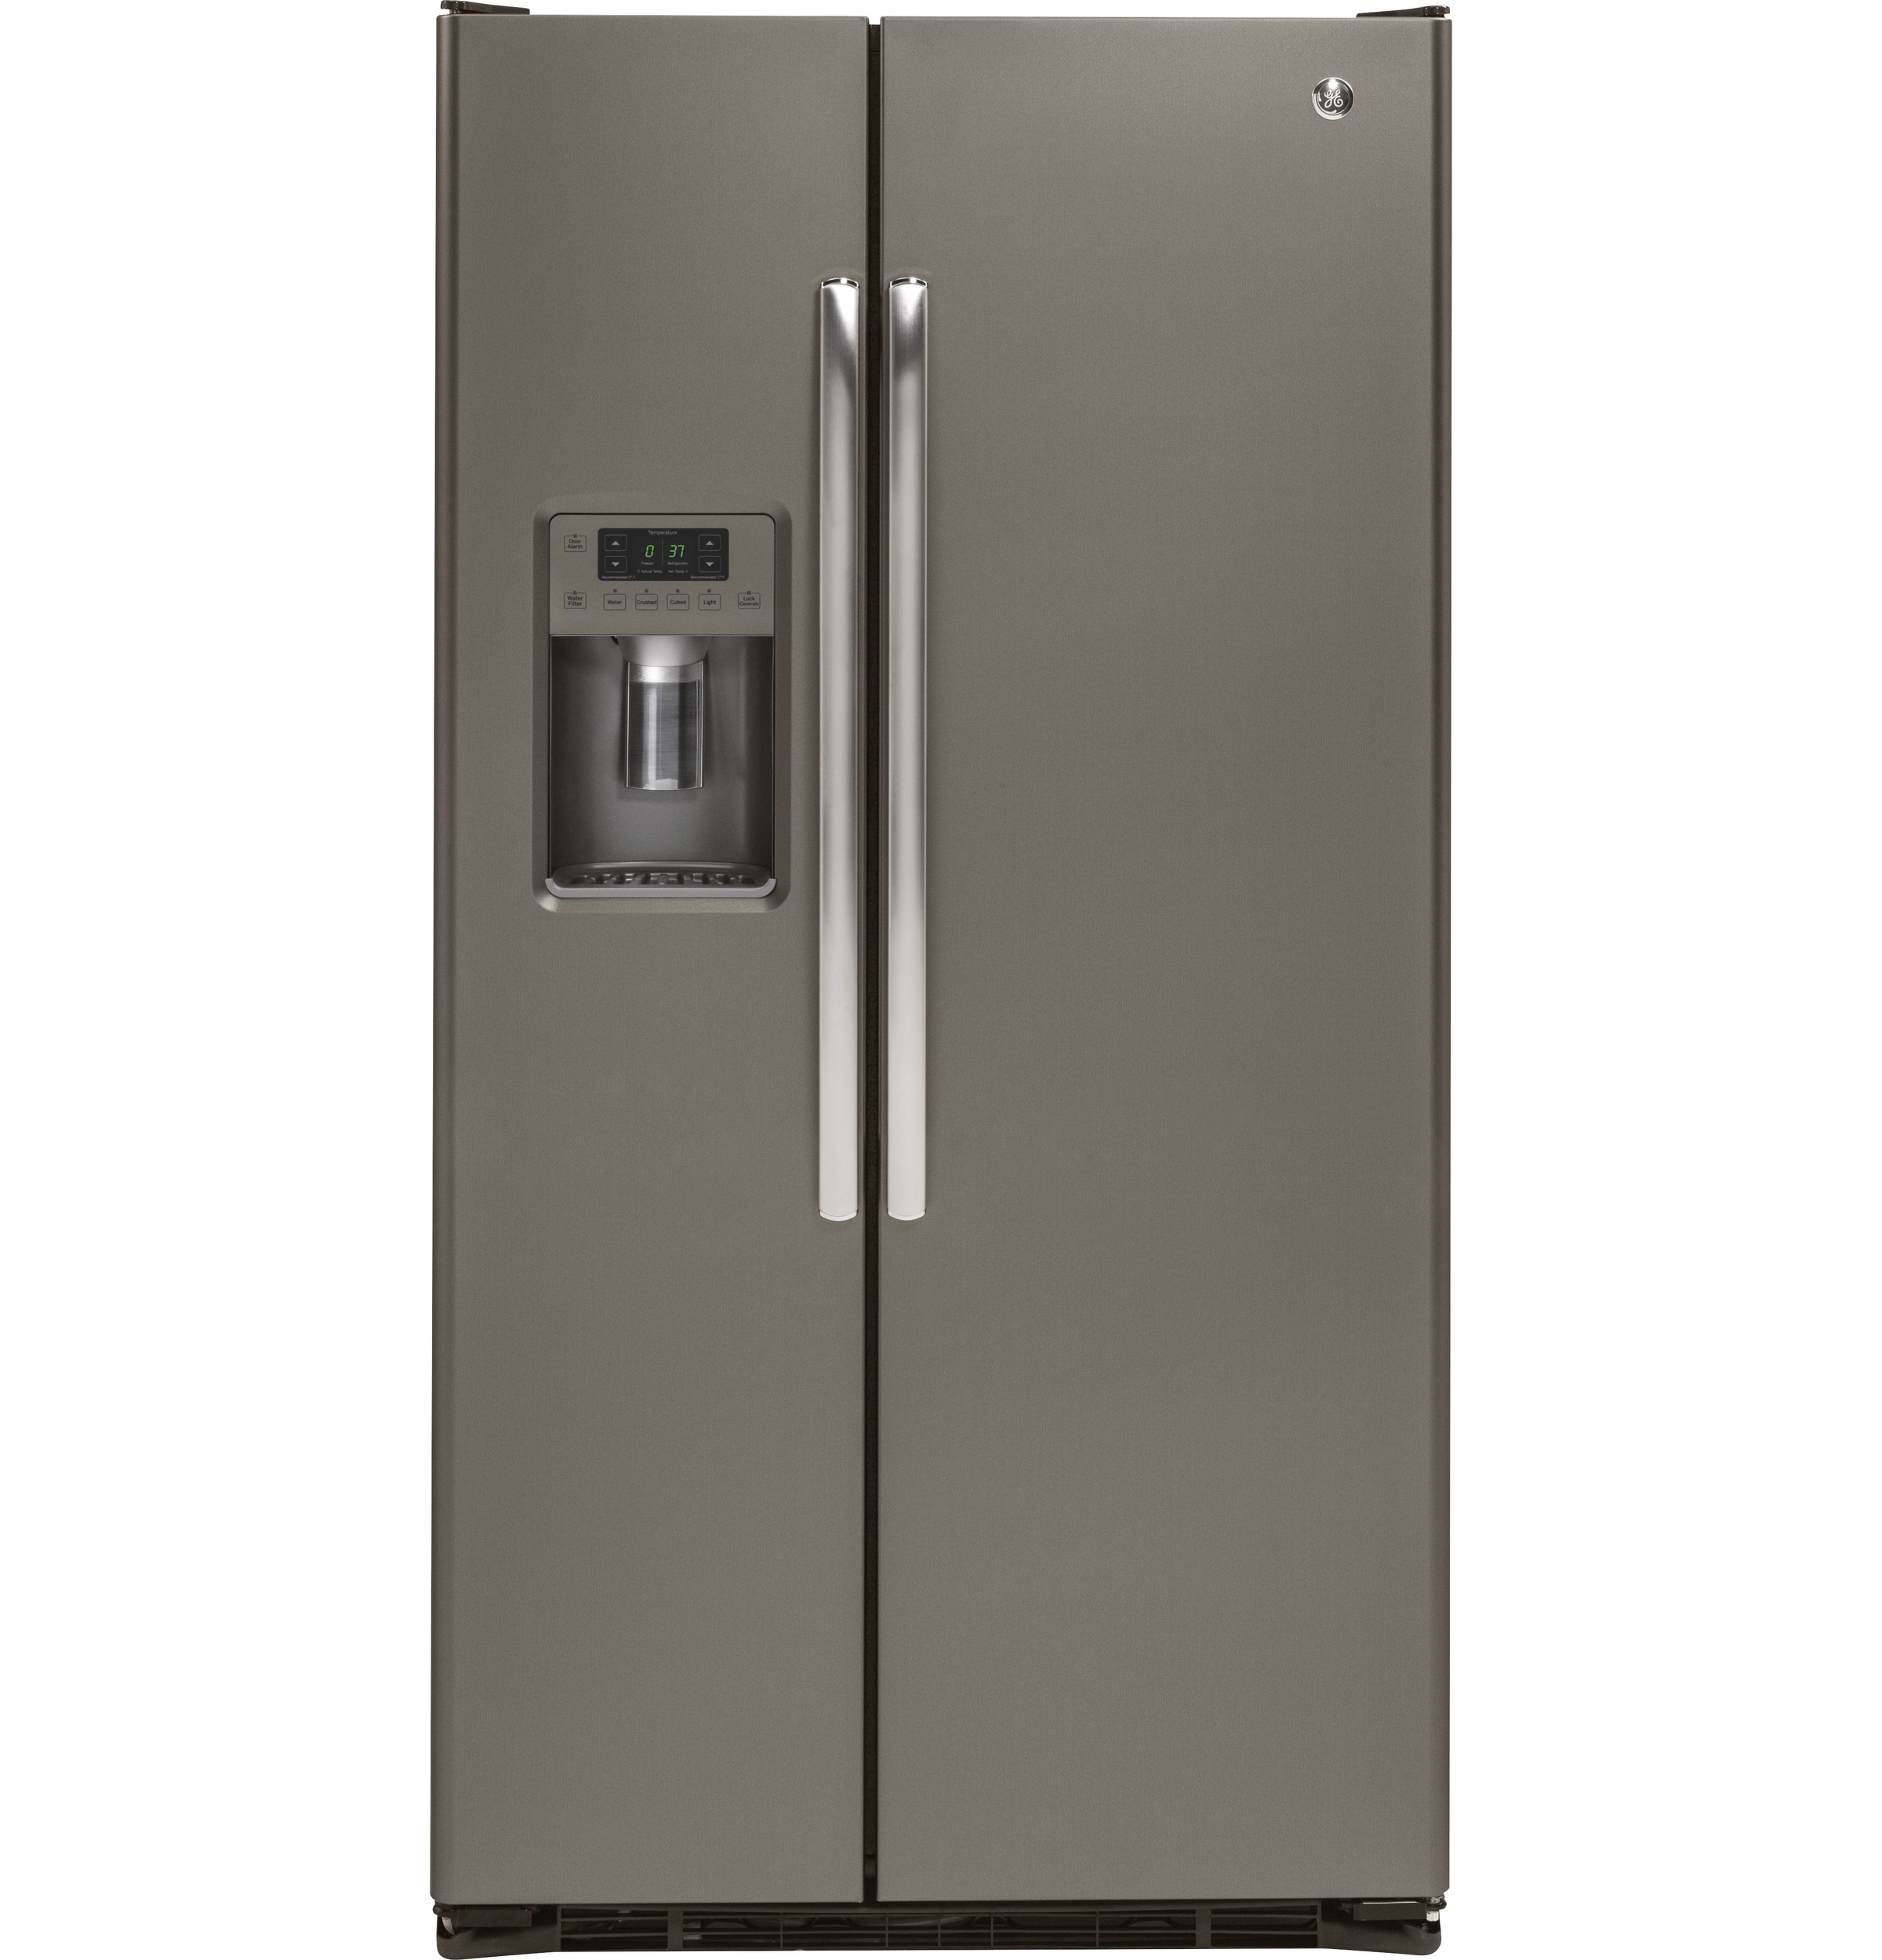 Design Ge Slate Refrigerator slate refrigerators from ge appliances 21 9 cu ft counter depth side by refrigerator